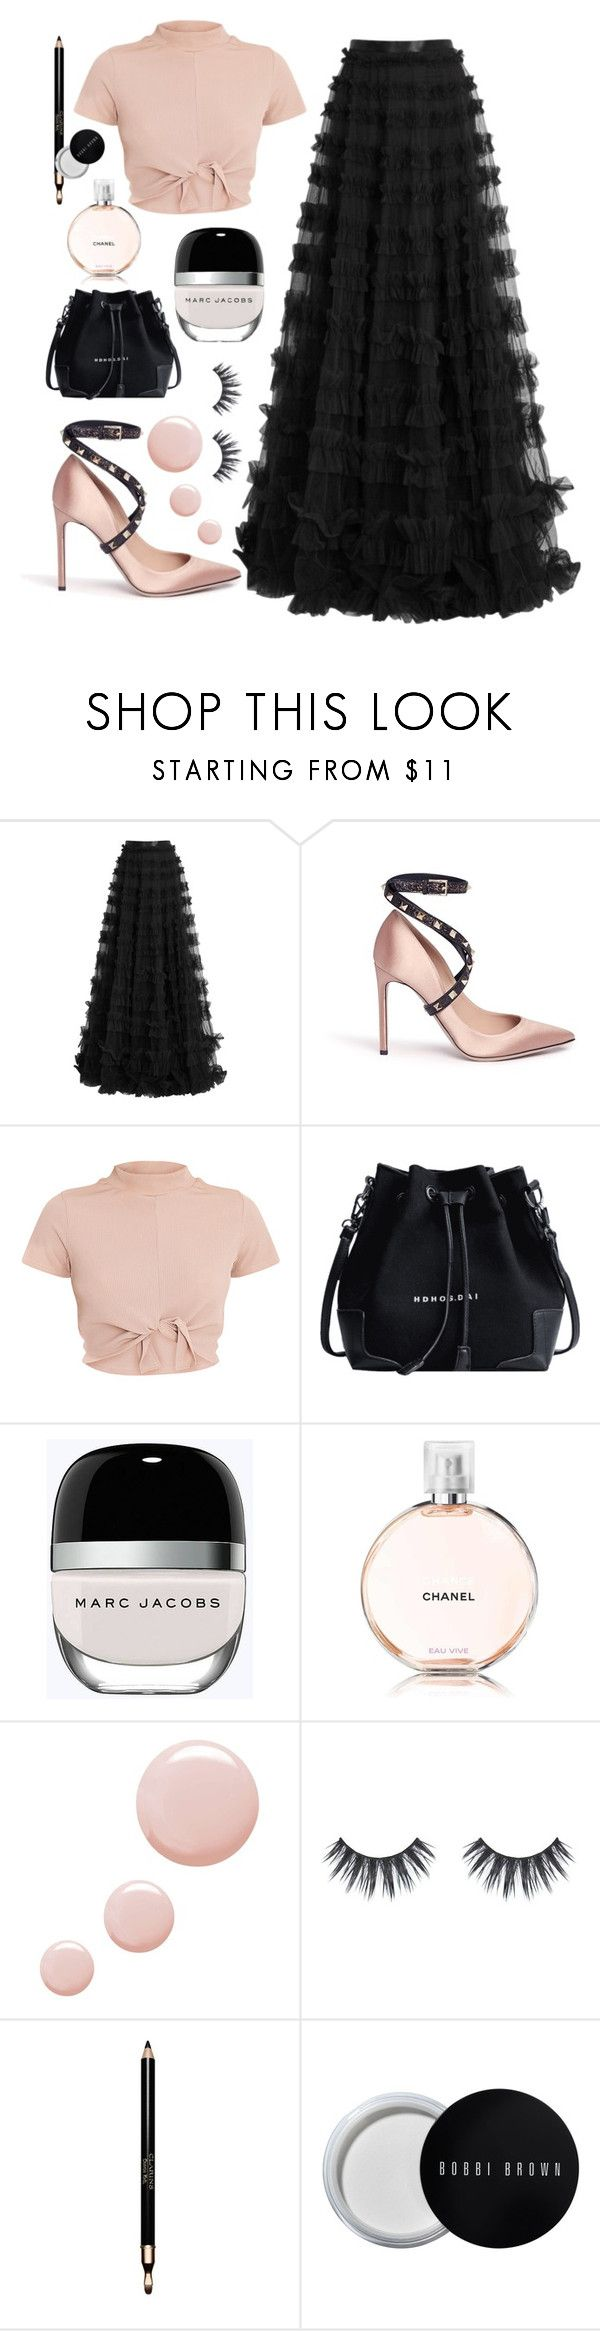 """Ballet inspired"" by lauraleeanne ❤ liked on Polyvore featuring Rachel Gilbert, Valentino, Marc Jacobs, Chanel, Topshop, Clarins and Bobbi Brown Cosmetics"